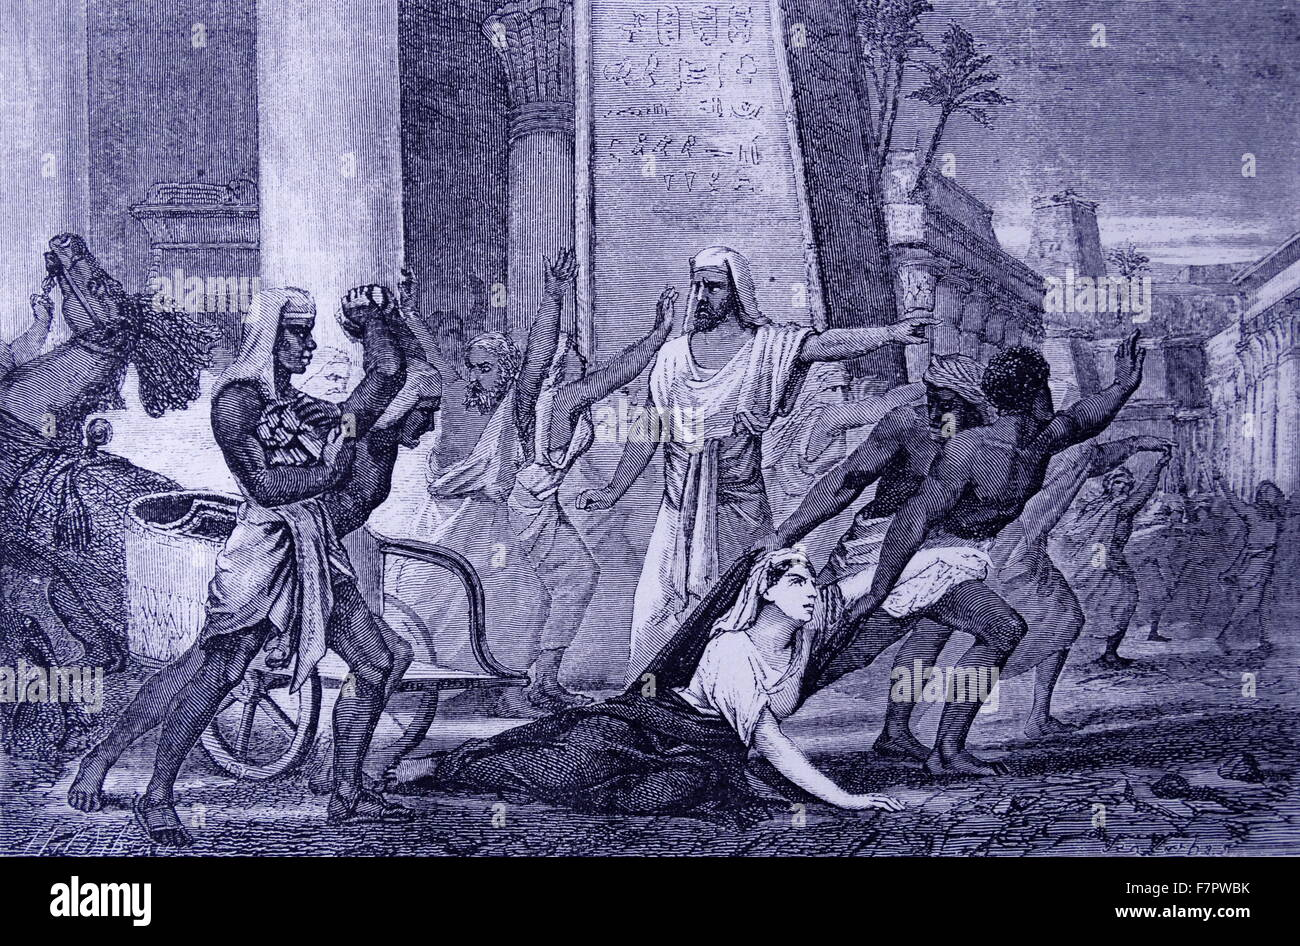 HYPATIA (c.3.70-415) mathematician and philosopher (NE0PLAT0NIST), murdered by the followers of Cyril, Patriarch - Stock Image